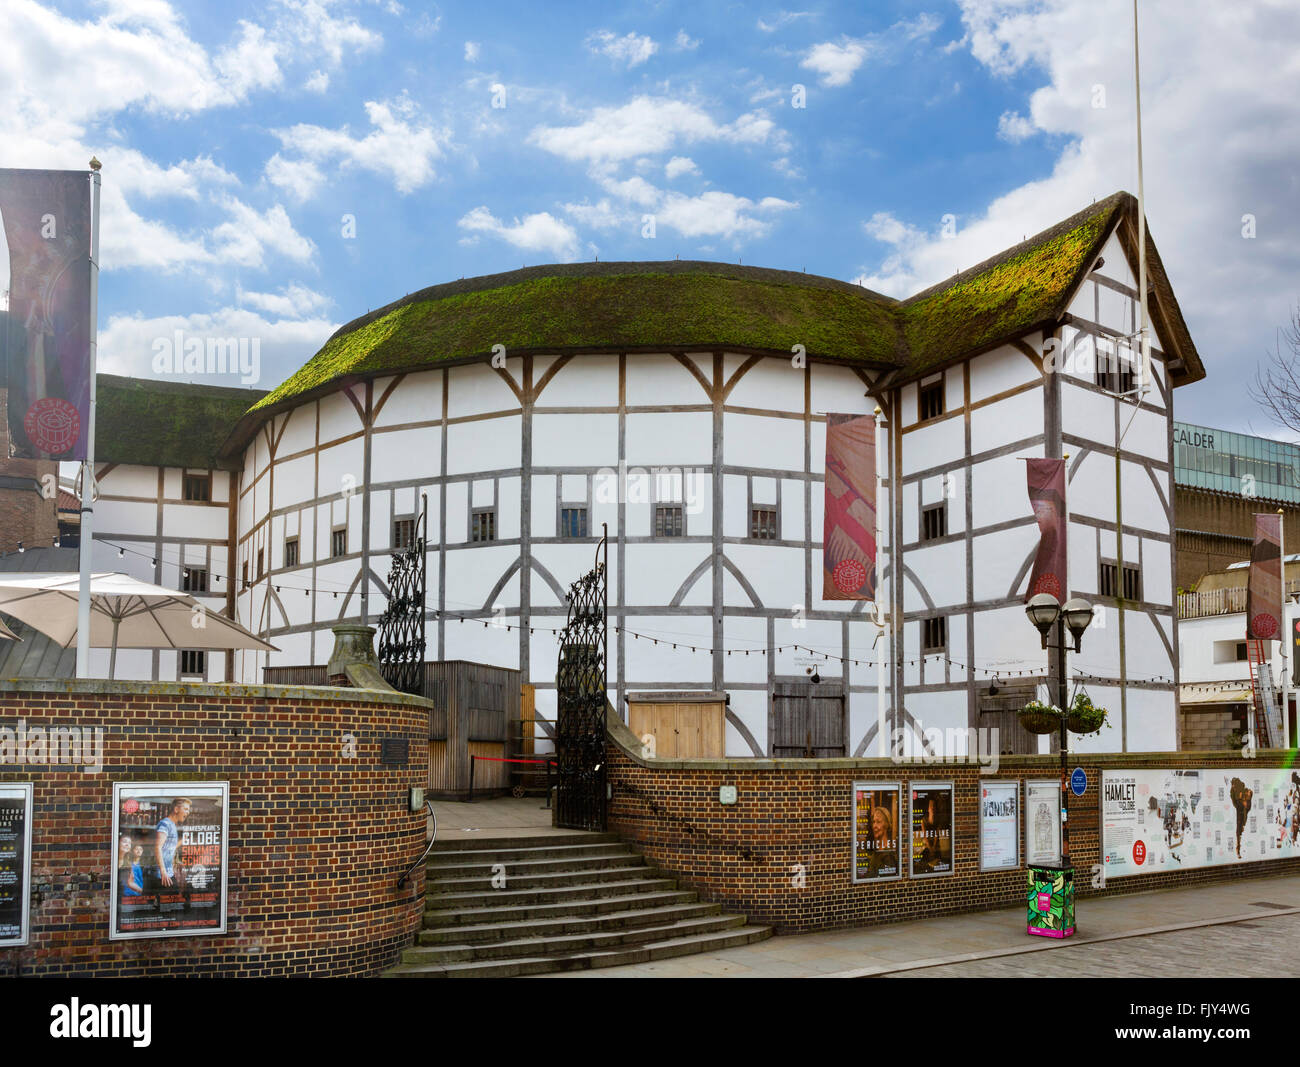 Shakespeare's Globe theatre on the south bank of the River Thames, Southwark, London, England, UK - Stock Image